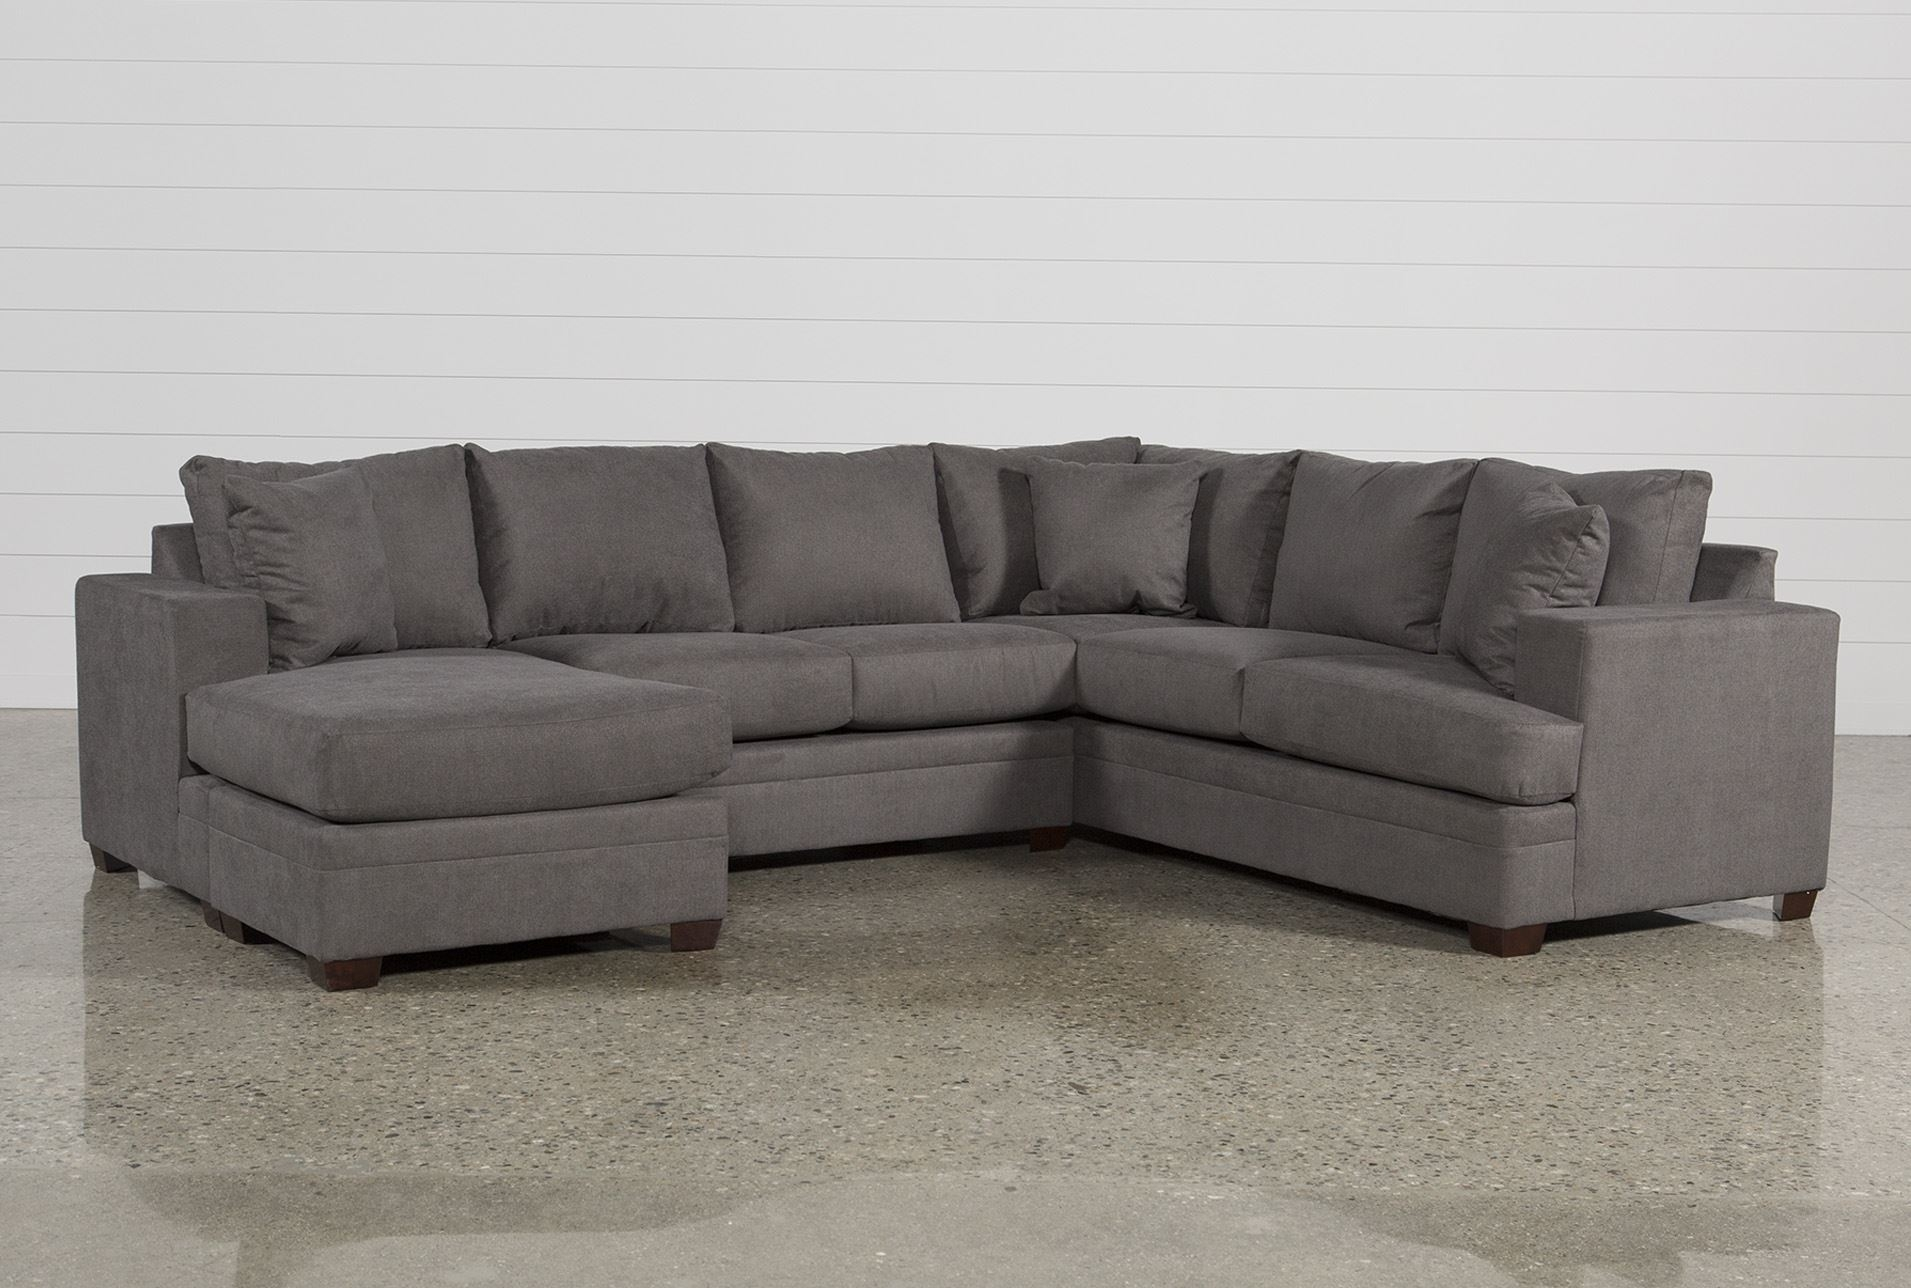 Lovely 2 Piece Sectional Sofa On Kerri 2 Piece Sectional W Laf inside Sectional Sofas With 2 Chaises